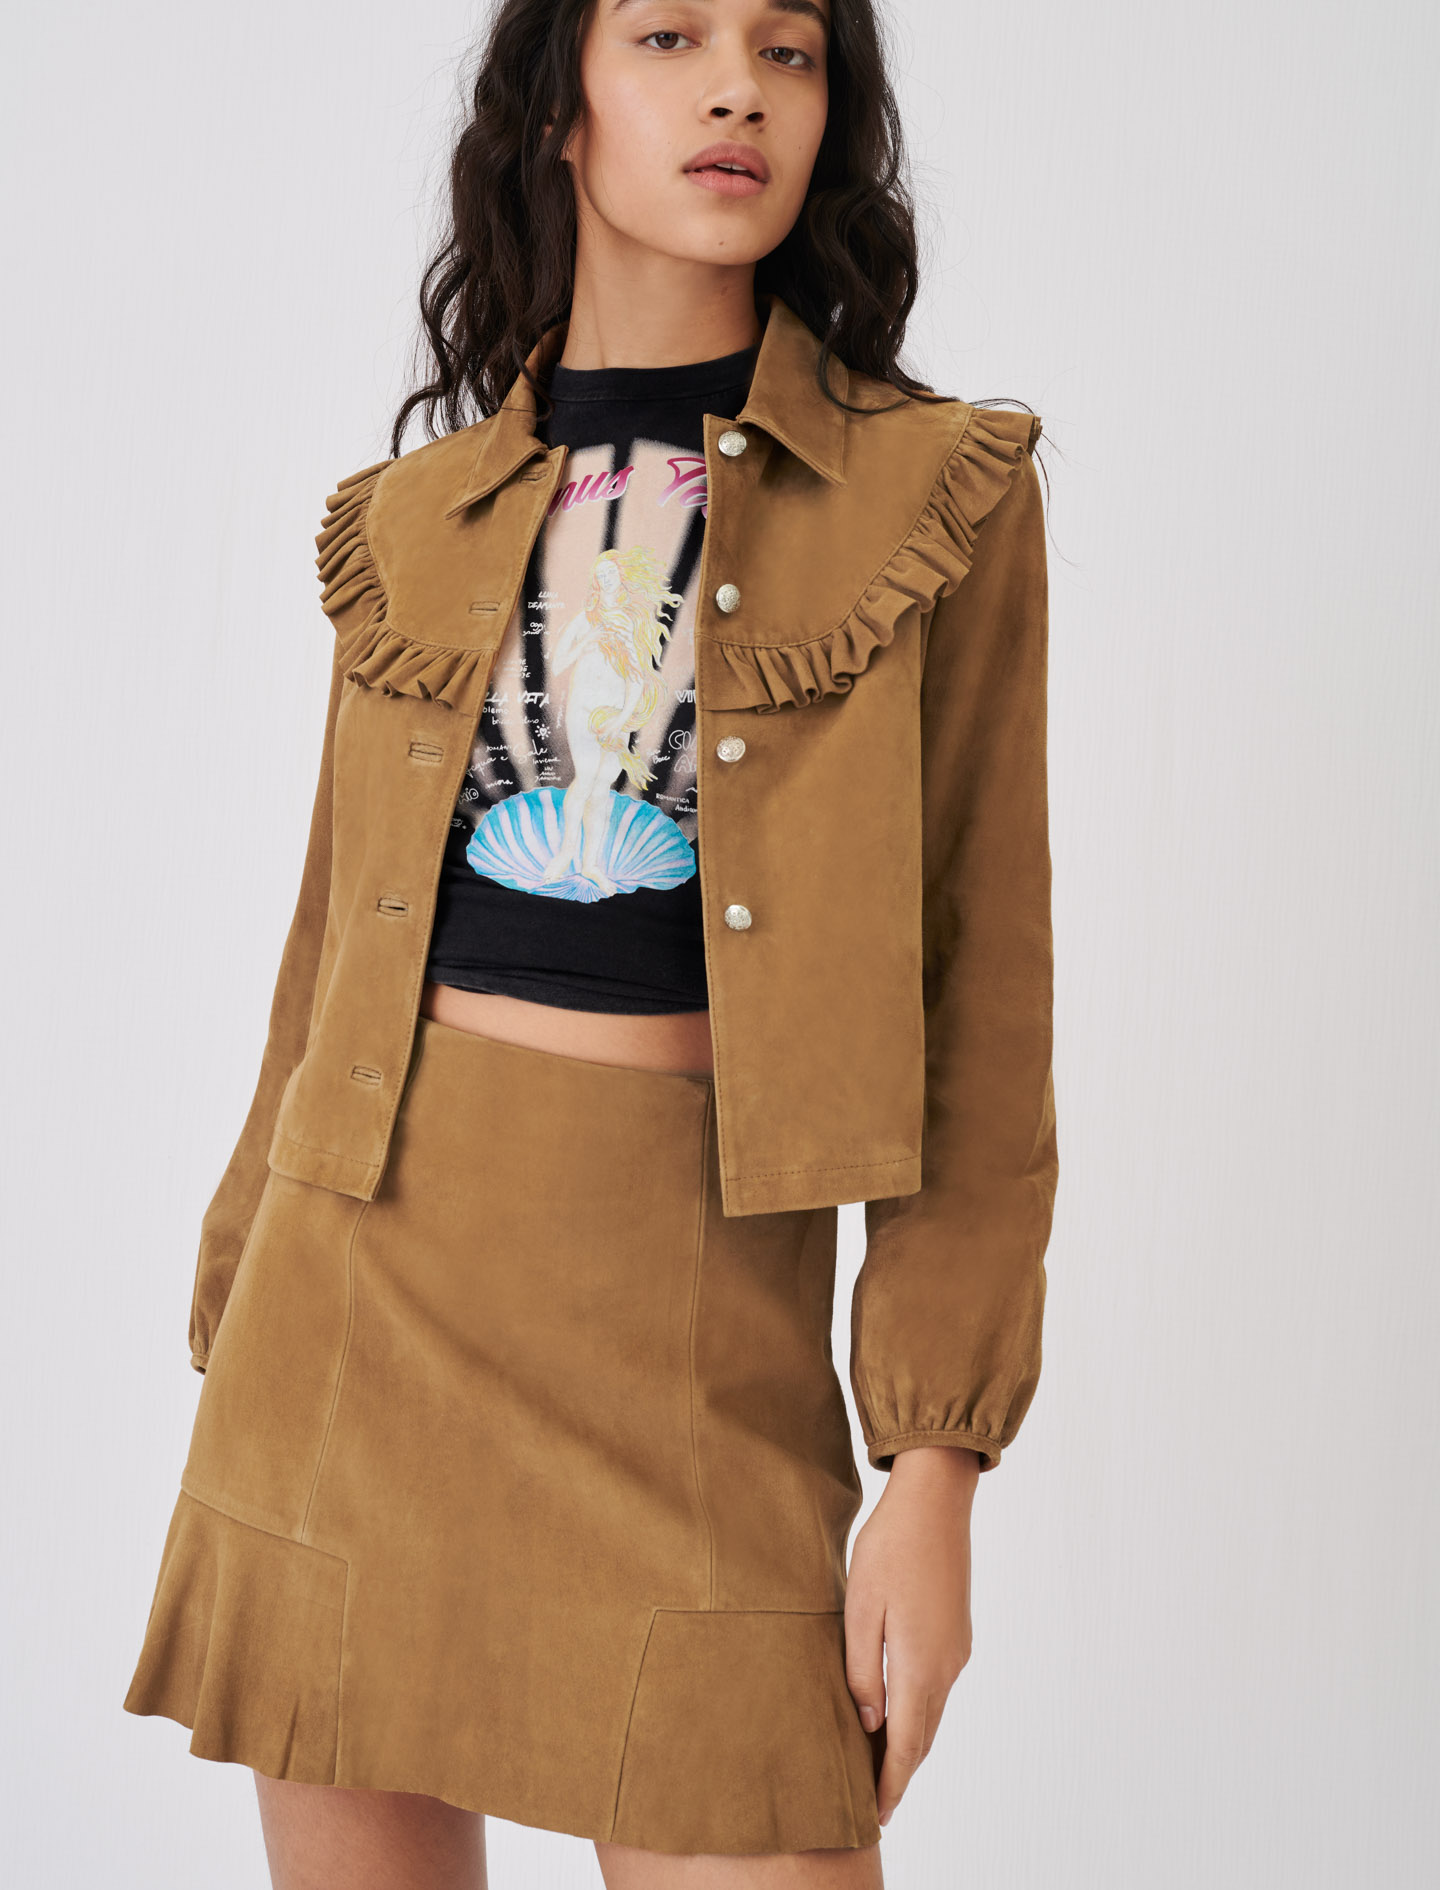 Ruffled Suede Skirt - Camel